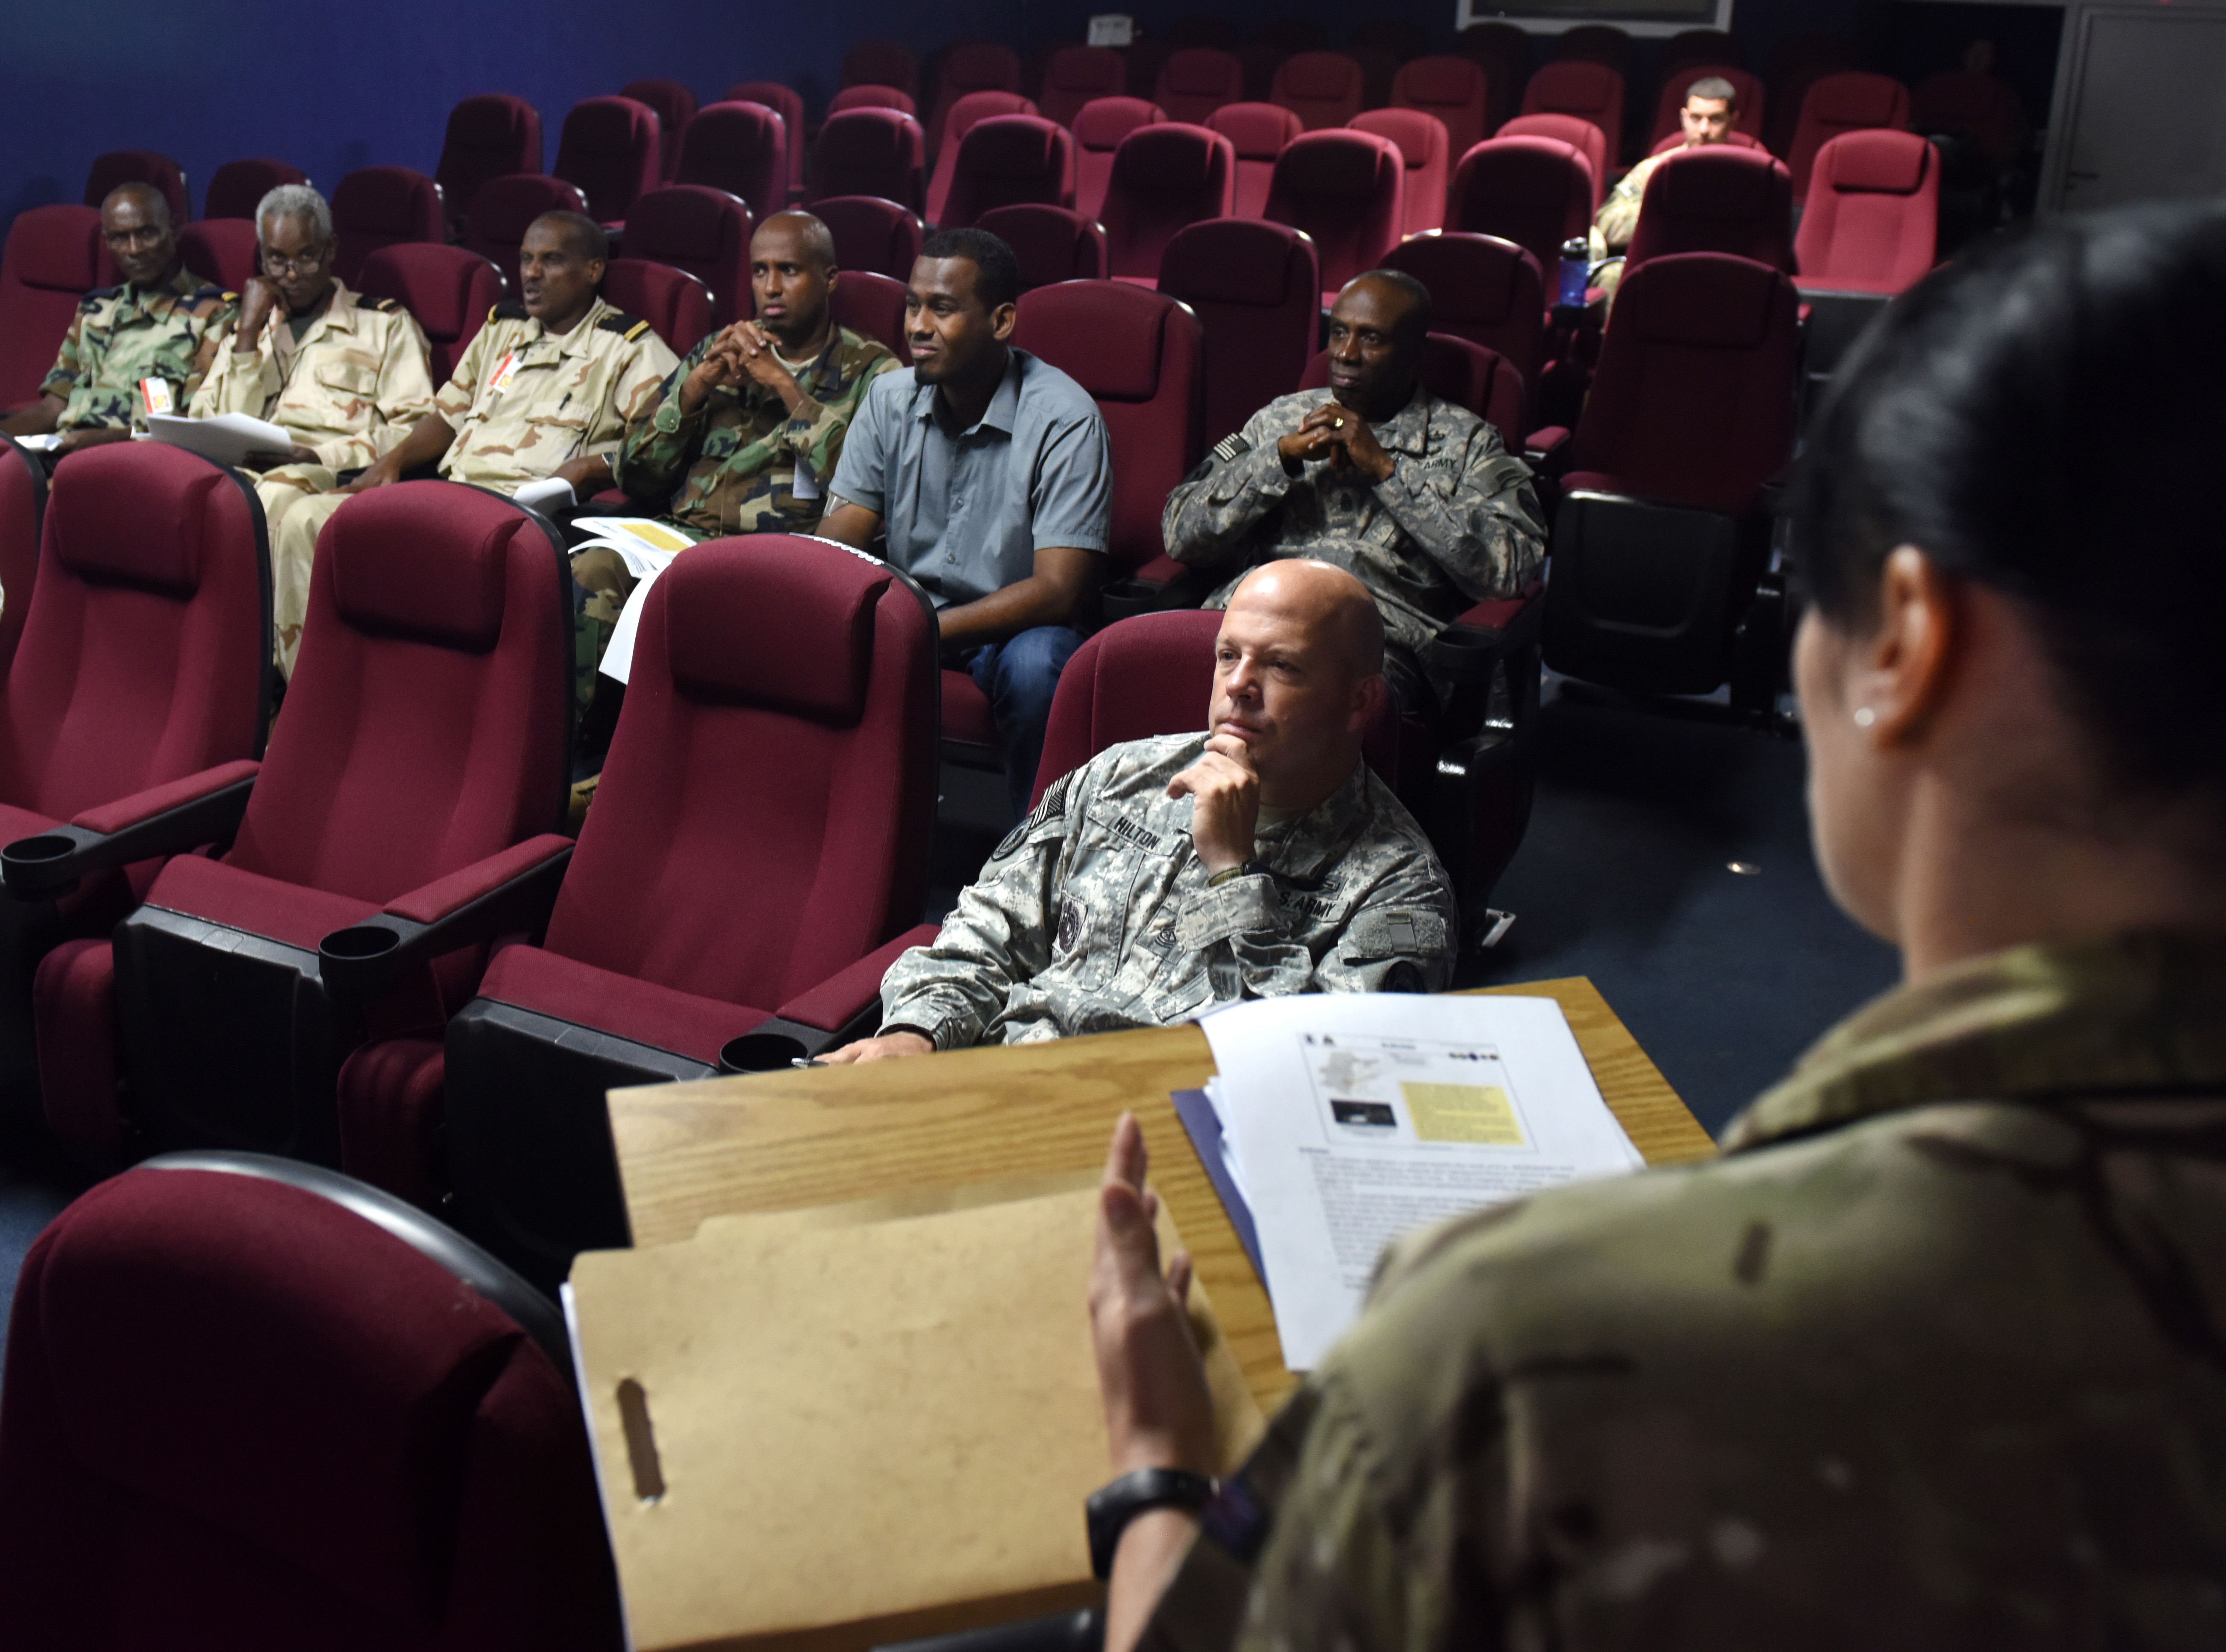 Royal Army Sgt. Victoria McIndewar, British Intelligence Corps, briefs senior enlisted leaders from Combined Joint Task Force-Horn of Africa and the Djibouti Armed Forces Dec. 29, 2015, at Camp Lemonnier, Djibouti. The visit consisted of two briefings covering current conditions in Somalia and the African Union mission to neutralize Al-Shabaab and stabilize the country. (U.S. Air Force photo by Staff Sgt. Kate Thornton)